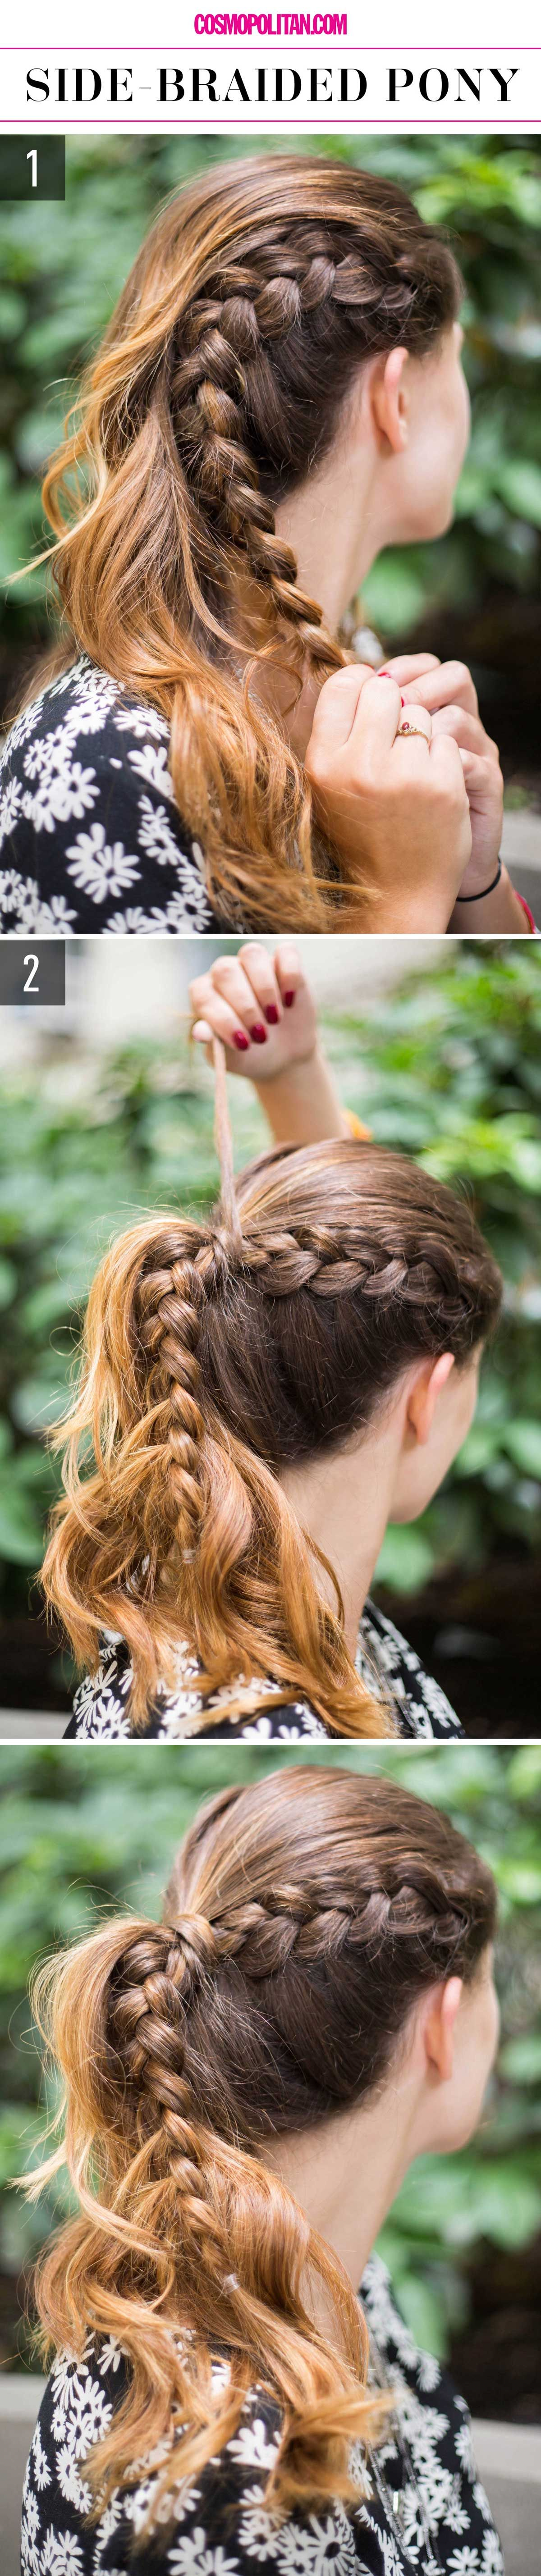 supereasy hairstyles for lazy girls who canut even hair dous